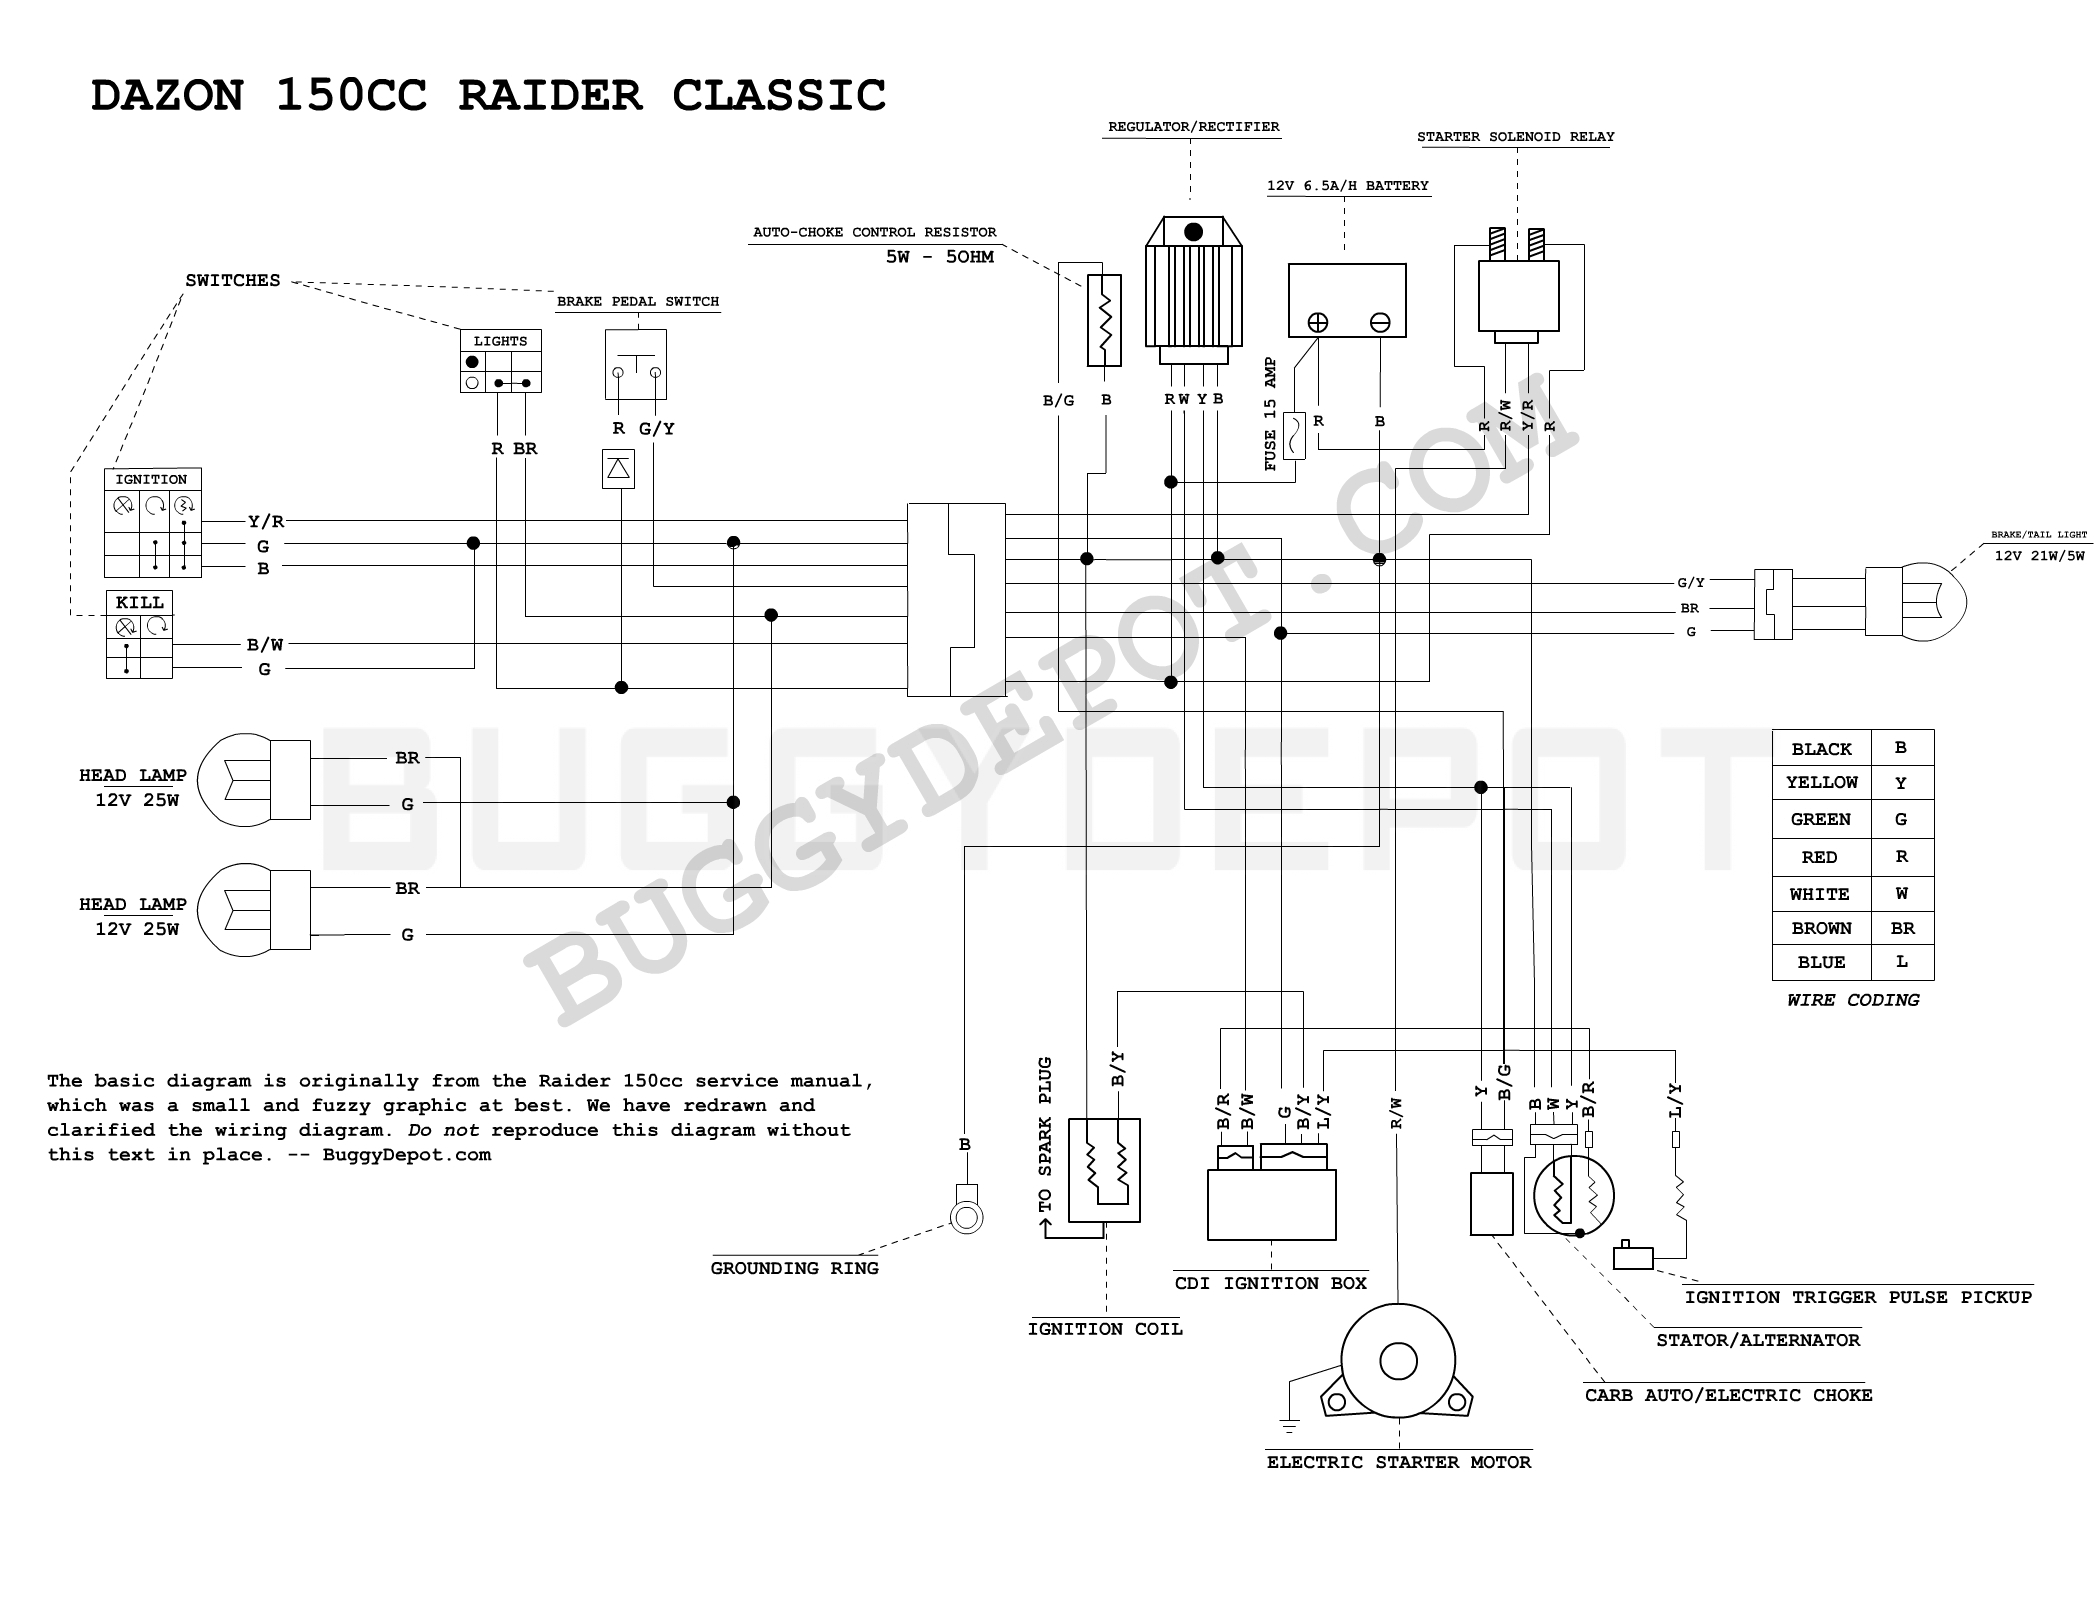 150cc quad bike wiring diagram pontiac g6 radio dazon raider classic buggy depot